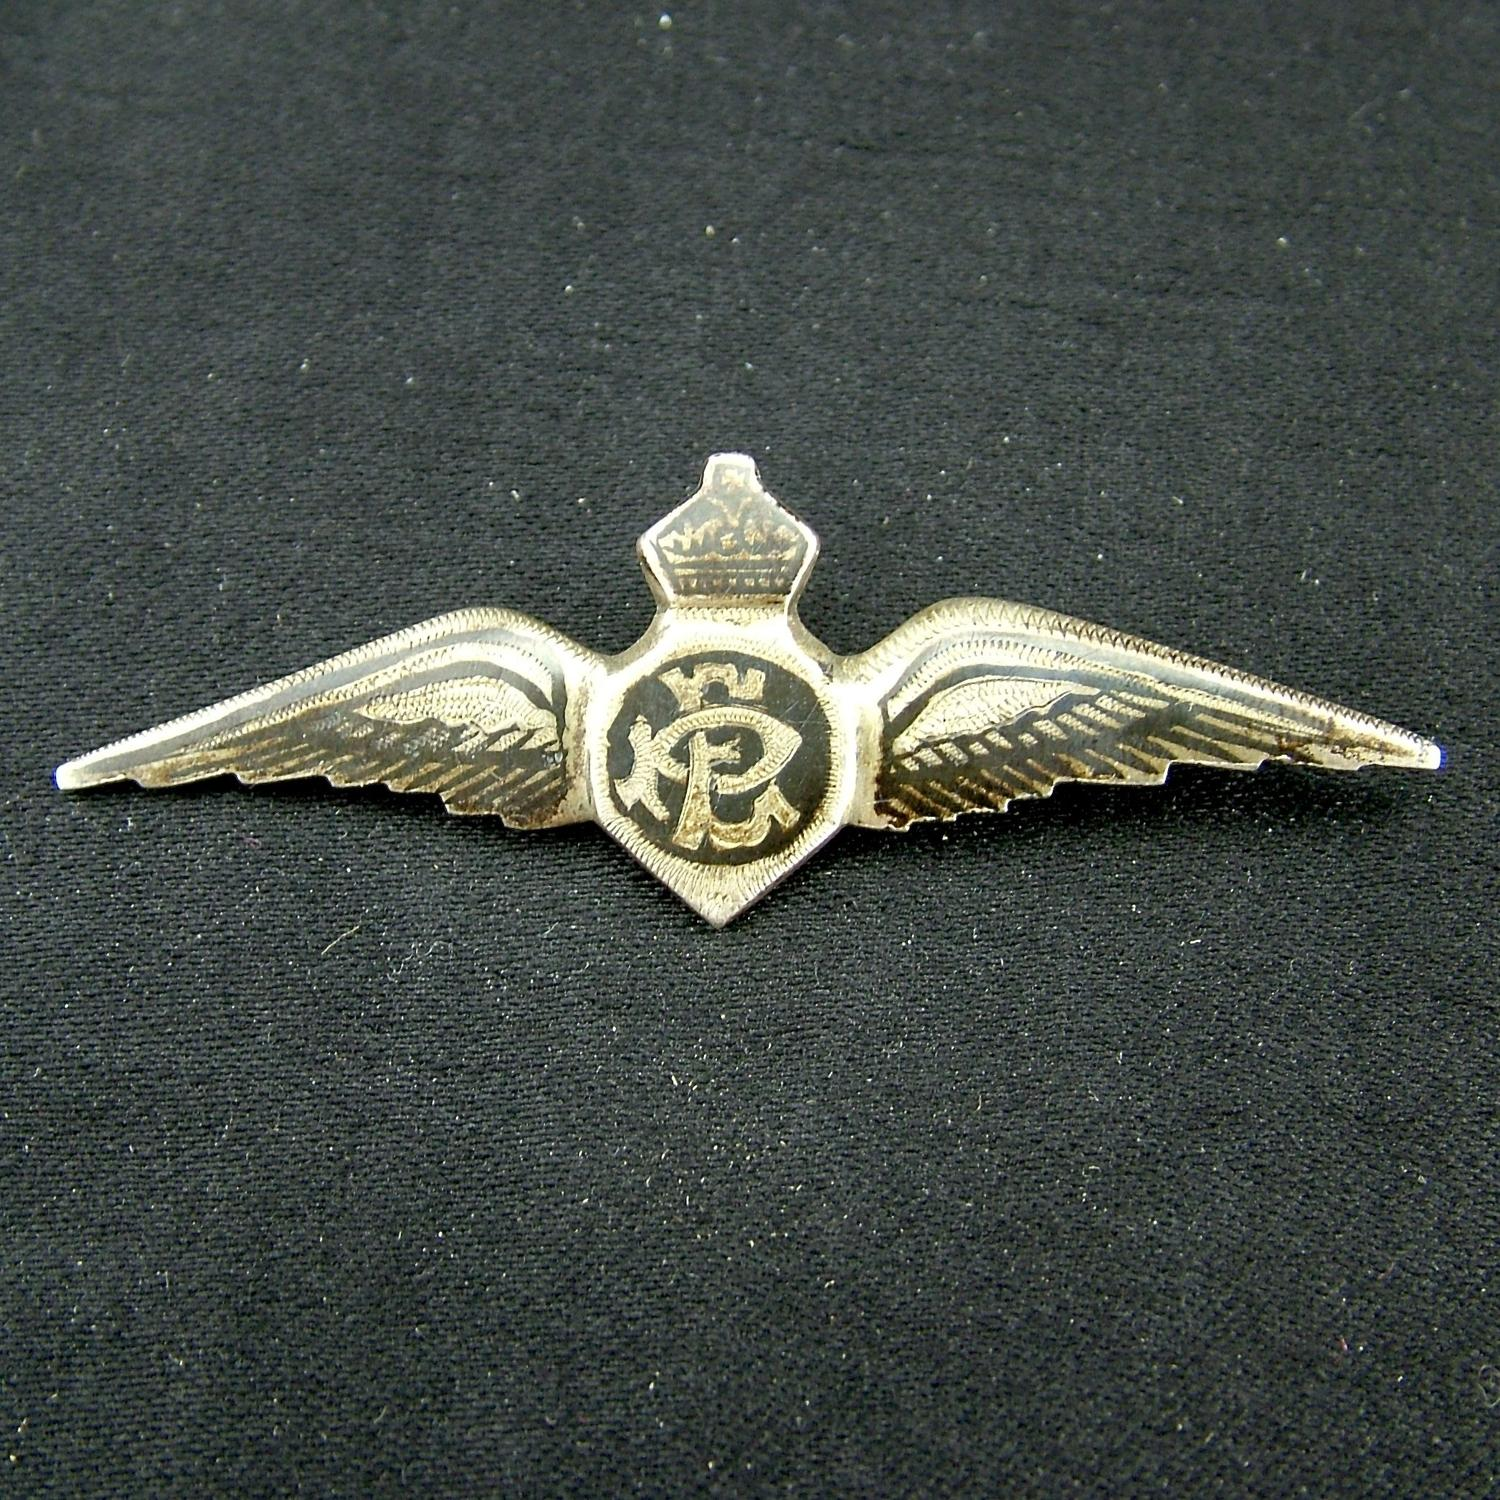 RAF sweetheart wing dated 1943